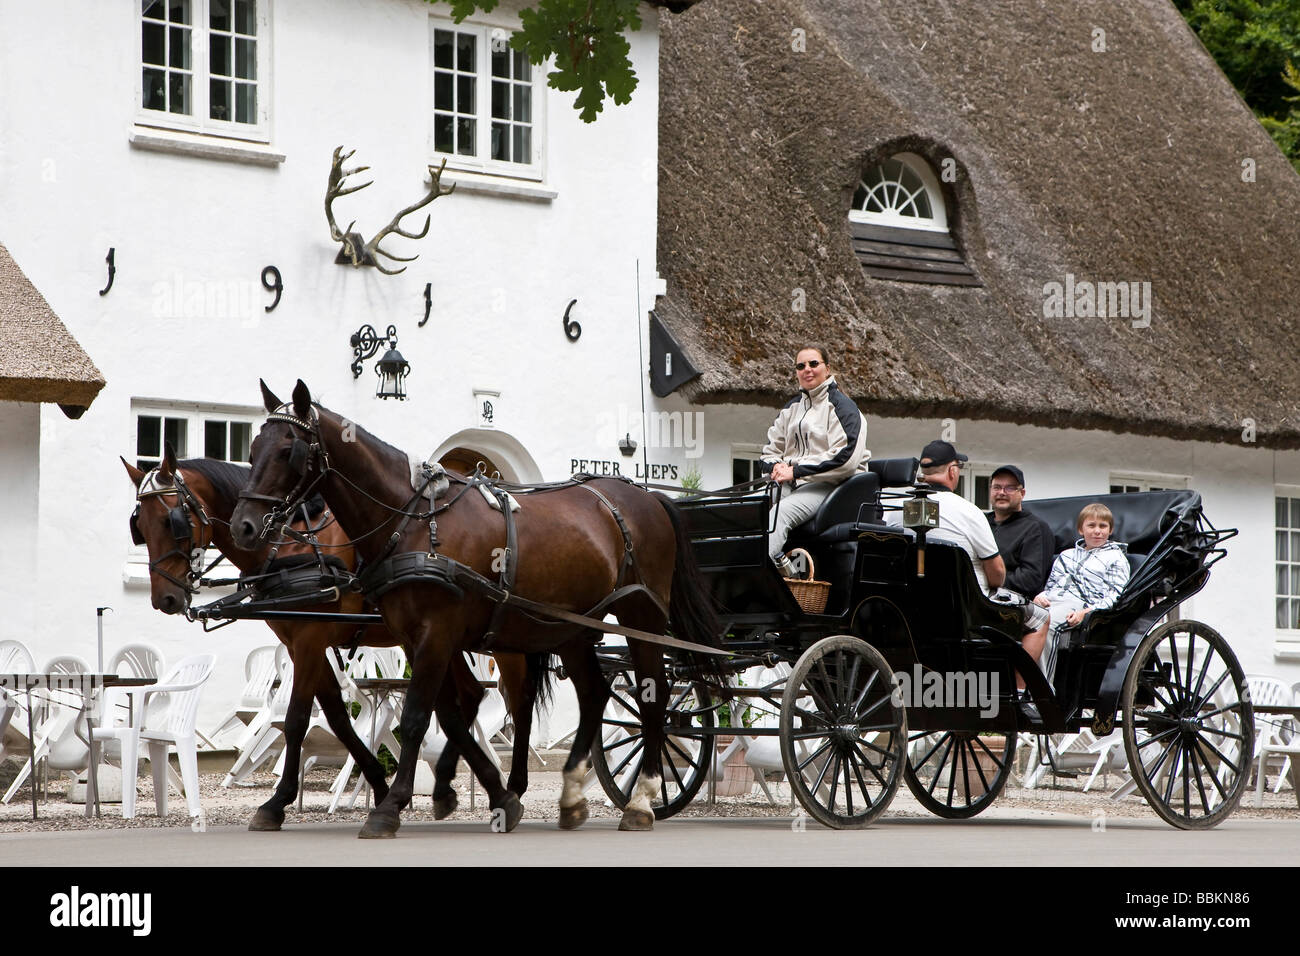 Sightseeing in a hackney carriage in the Danish park Dyrehave, Copenhagen, Denmark - Stock Image